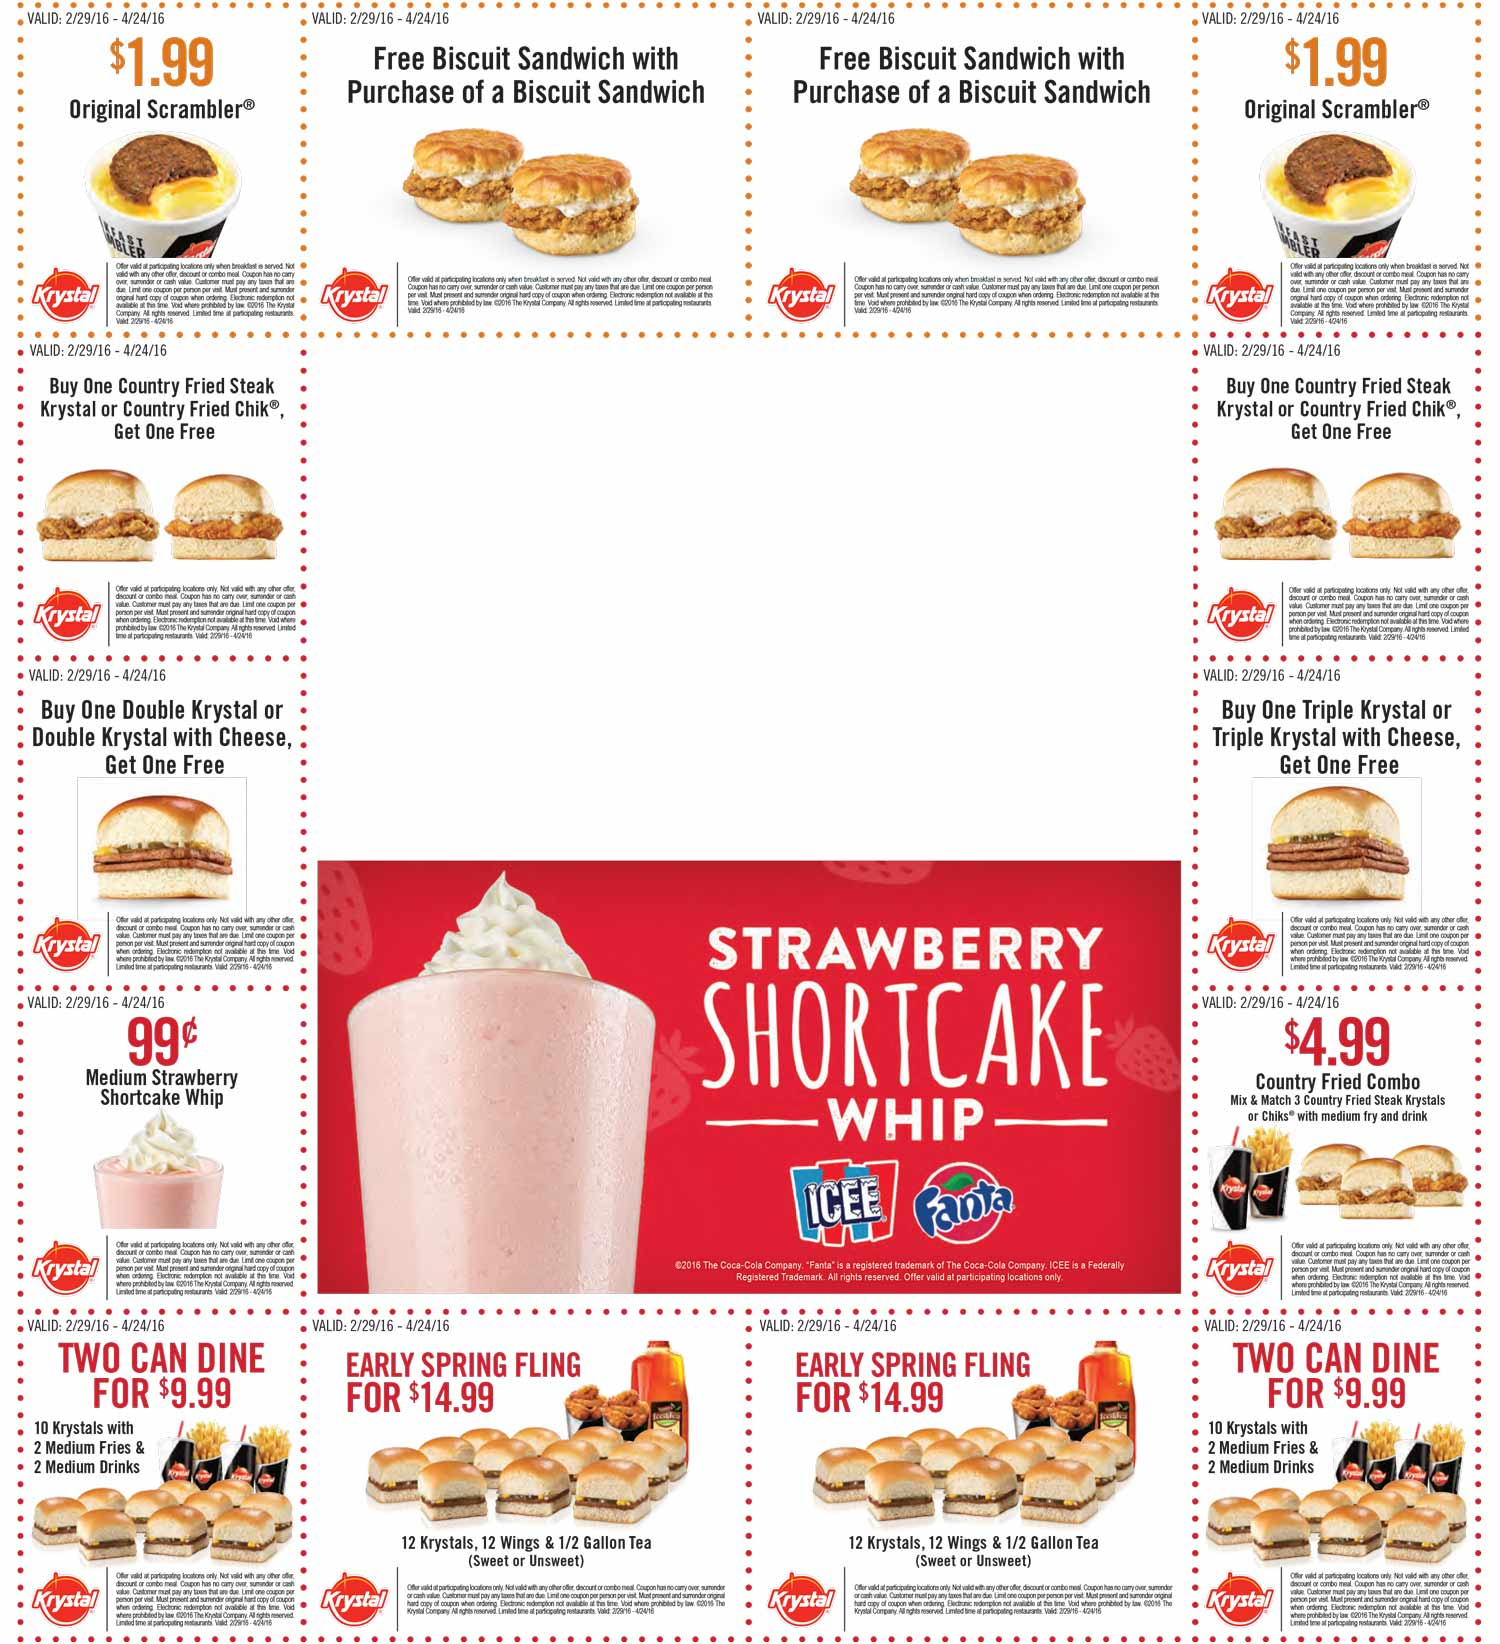 Krystal Coupon July 2018 Various two-for-one deals at Krystal restaurants